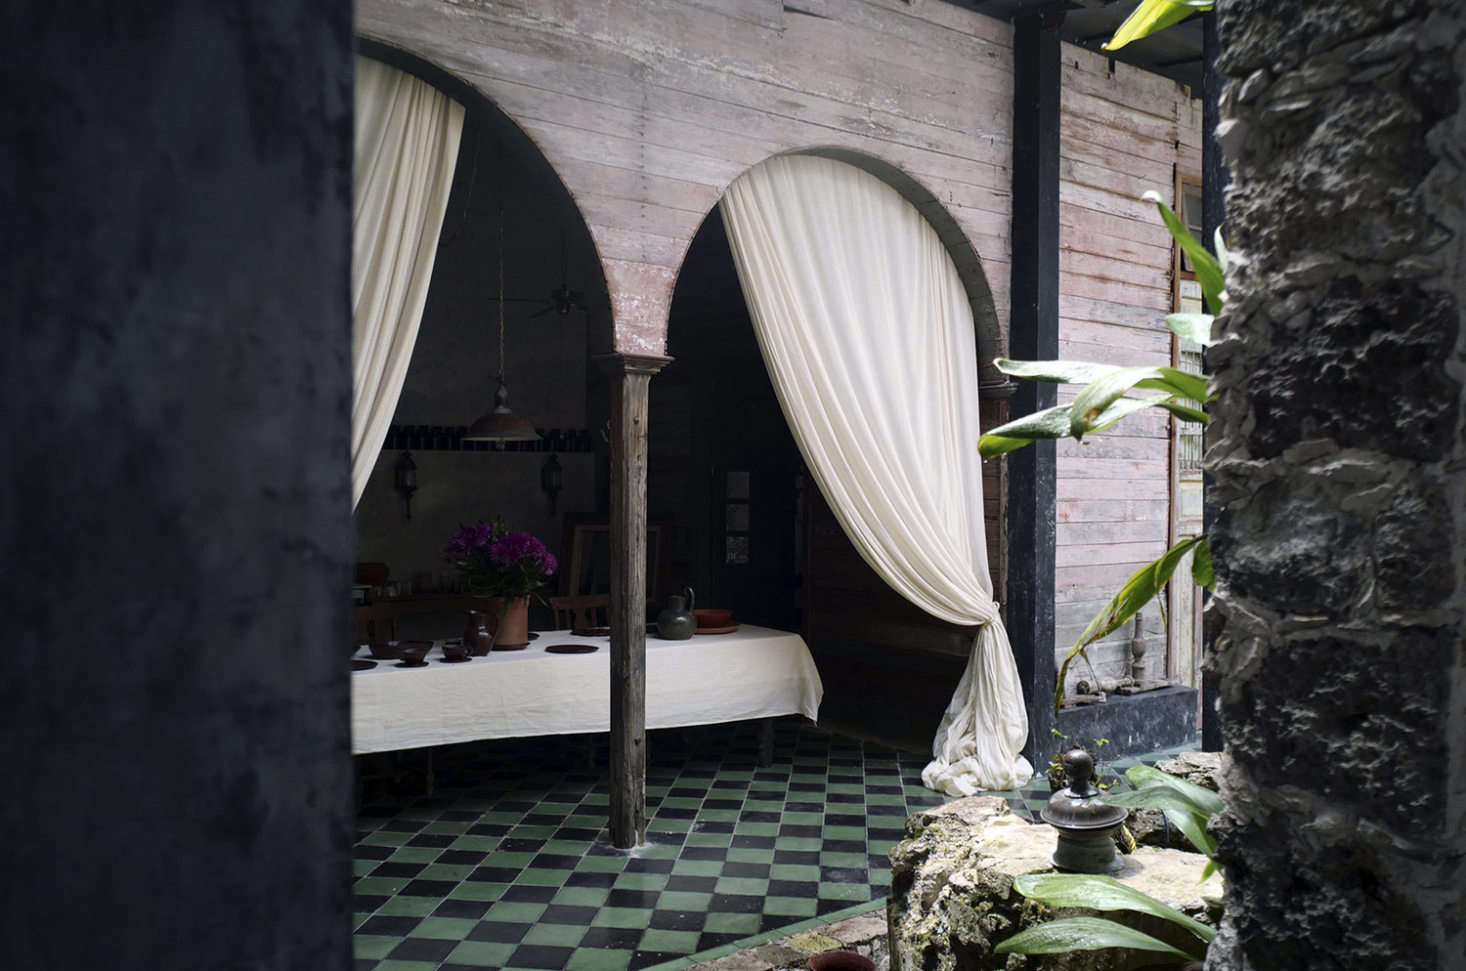 The tiled veranda, with long, sultry curtains.